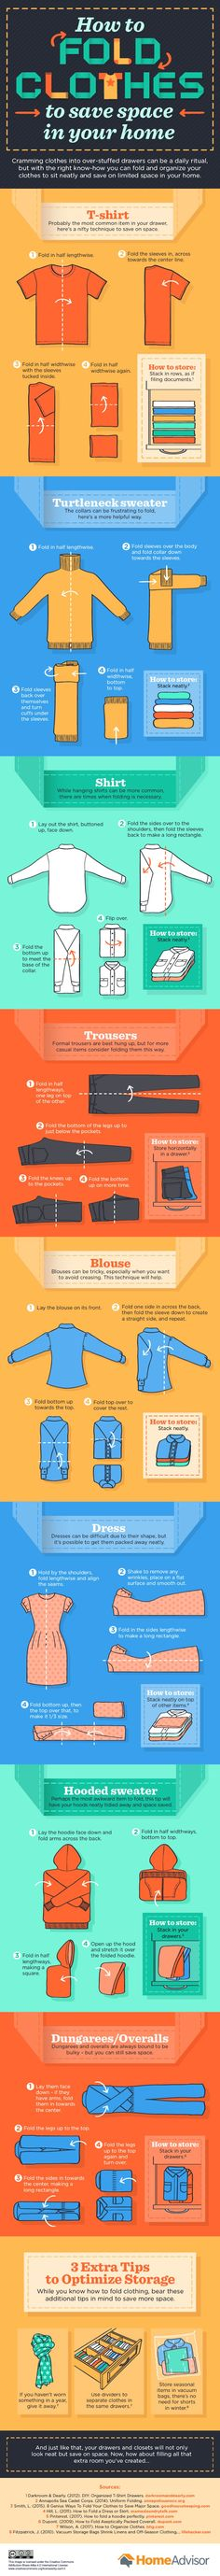 How to Fold Clothes Infographic